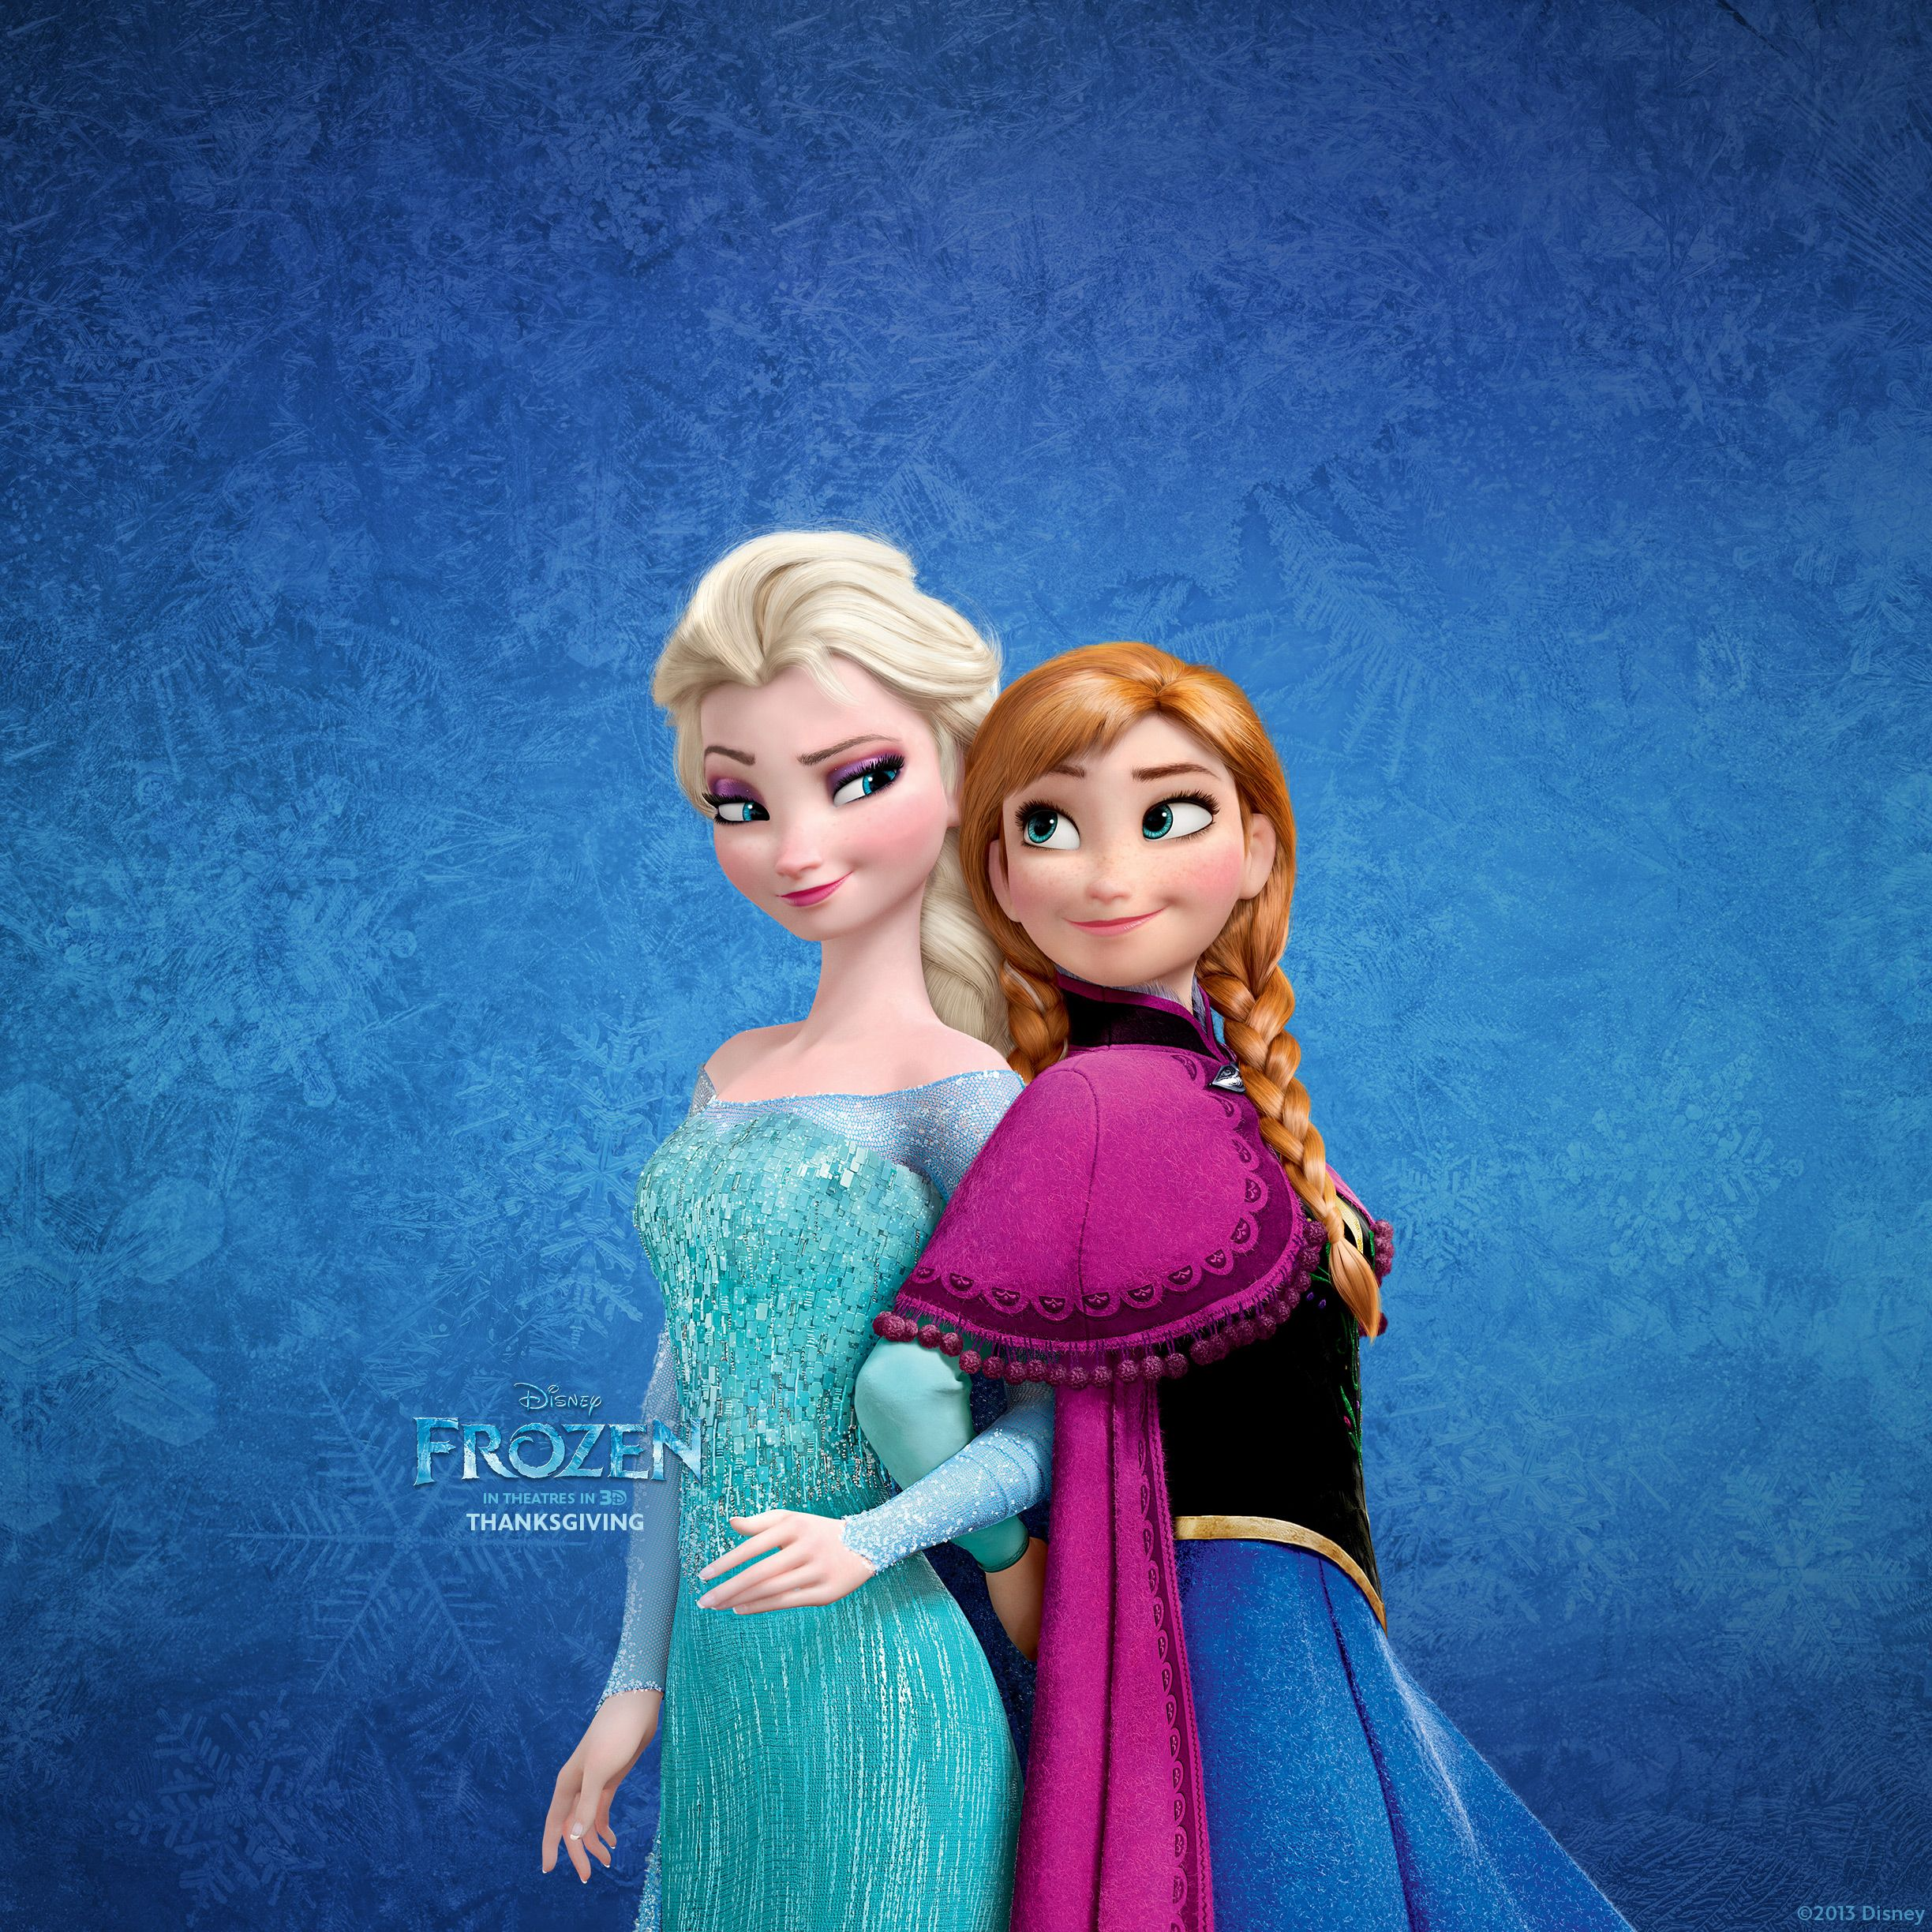 Frozen Elsa And Anna Wallpaper For Ipad